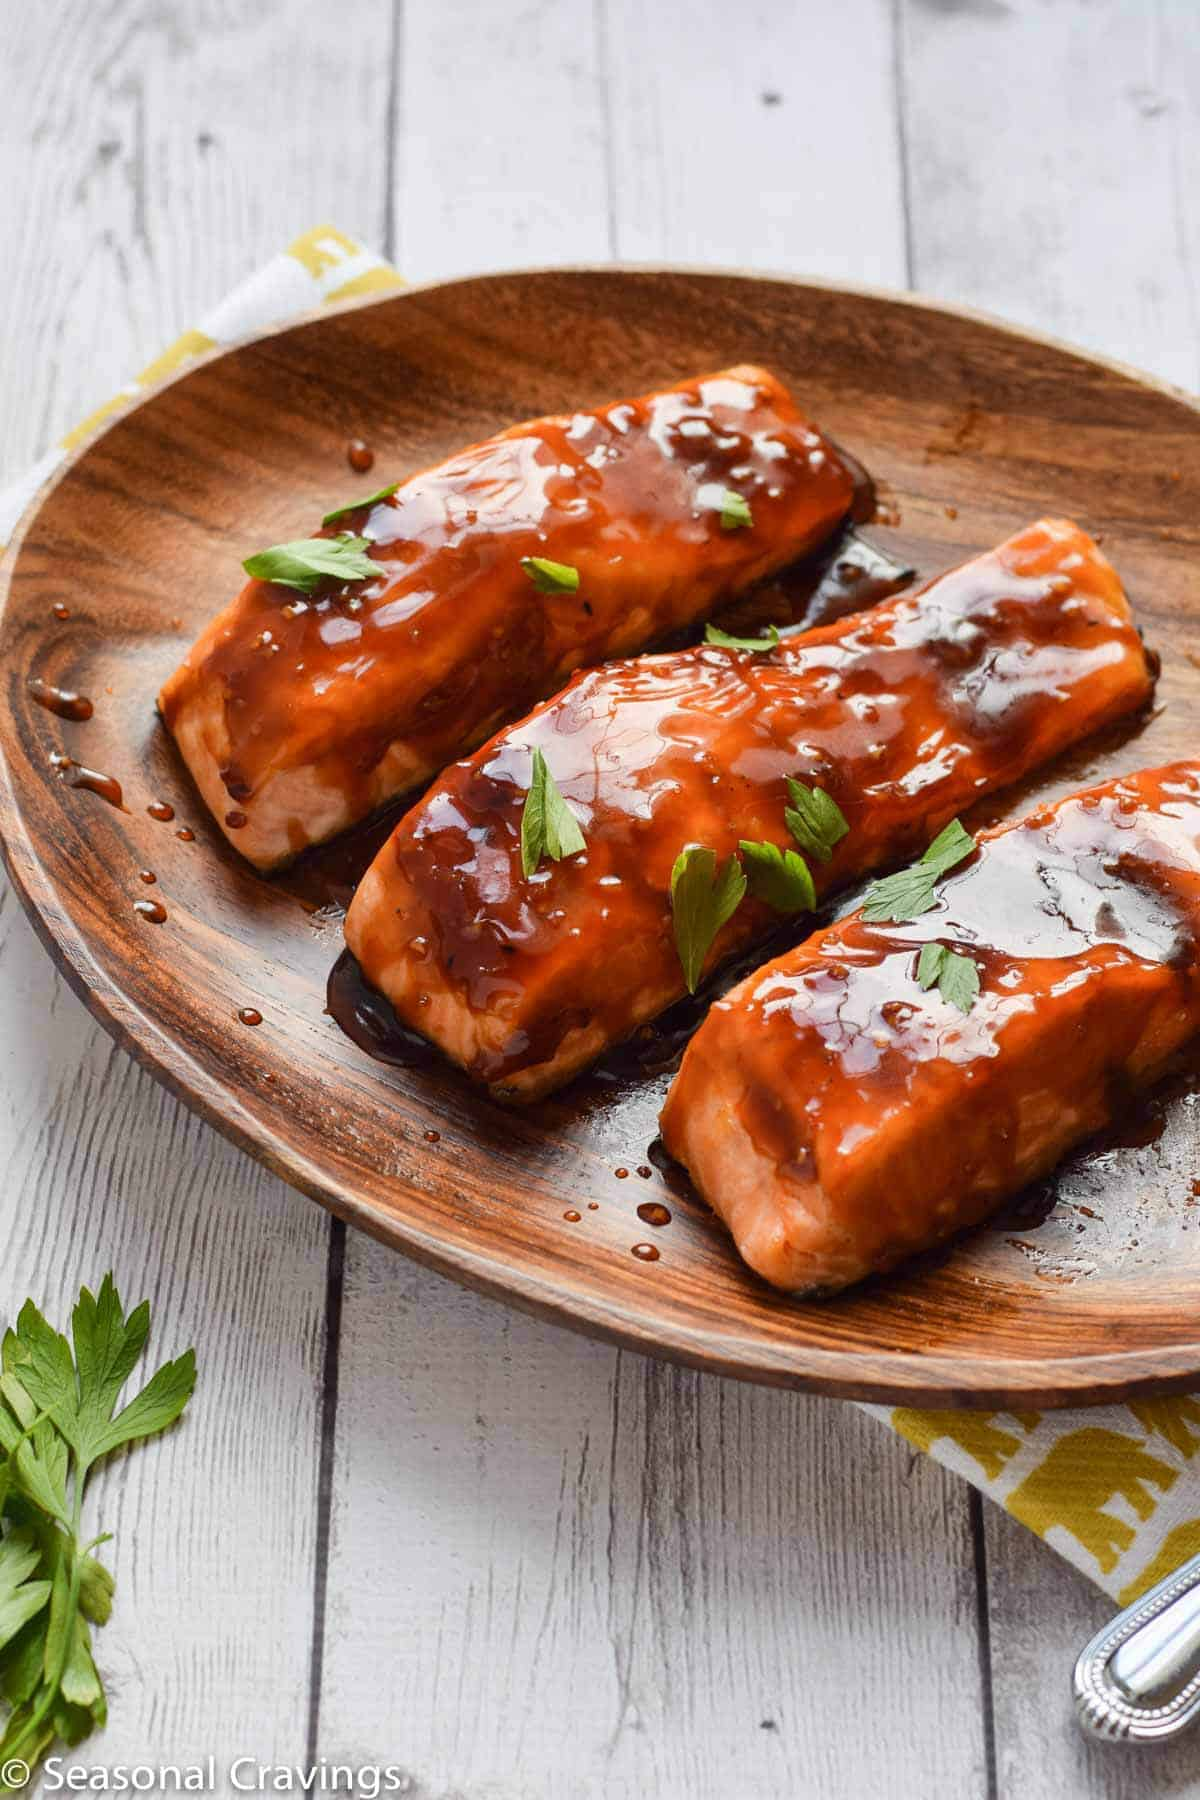 Easy Teriyaki Salmon with sweet sticky glaze on a wooden plate